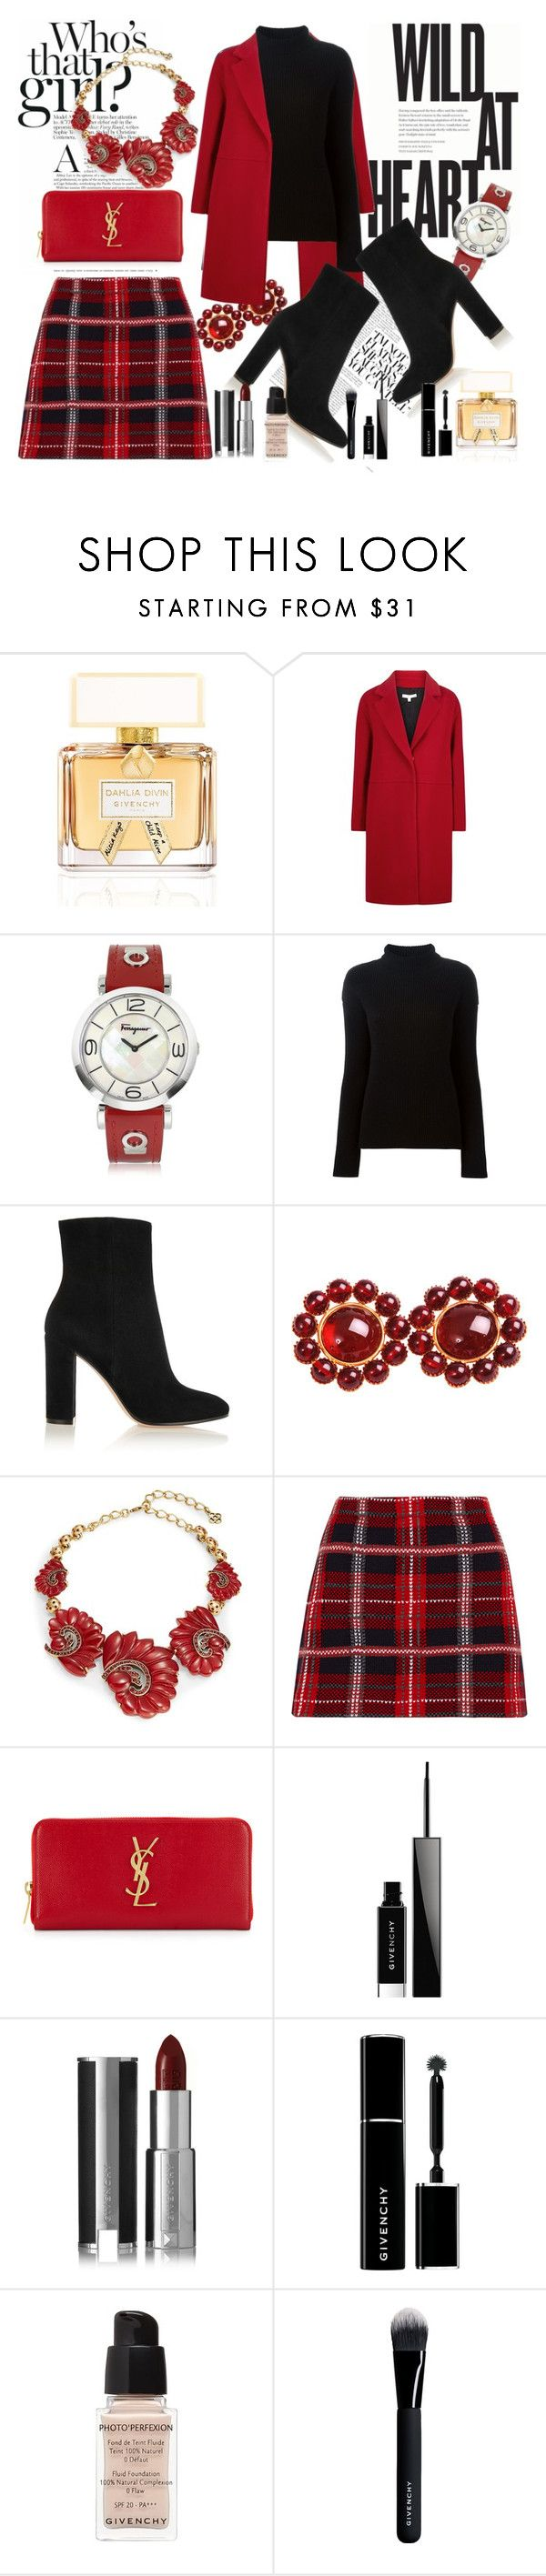 Date night by denisa-marcu on Polyvore featuring Helmut Lang, Paule Ka, Miu Miu, Gianvito Rossi, Yves Saint Laurent, Oscar de la Renta, Salvatore Ferragamo and Givenchy